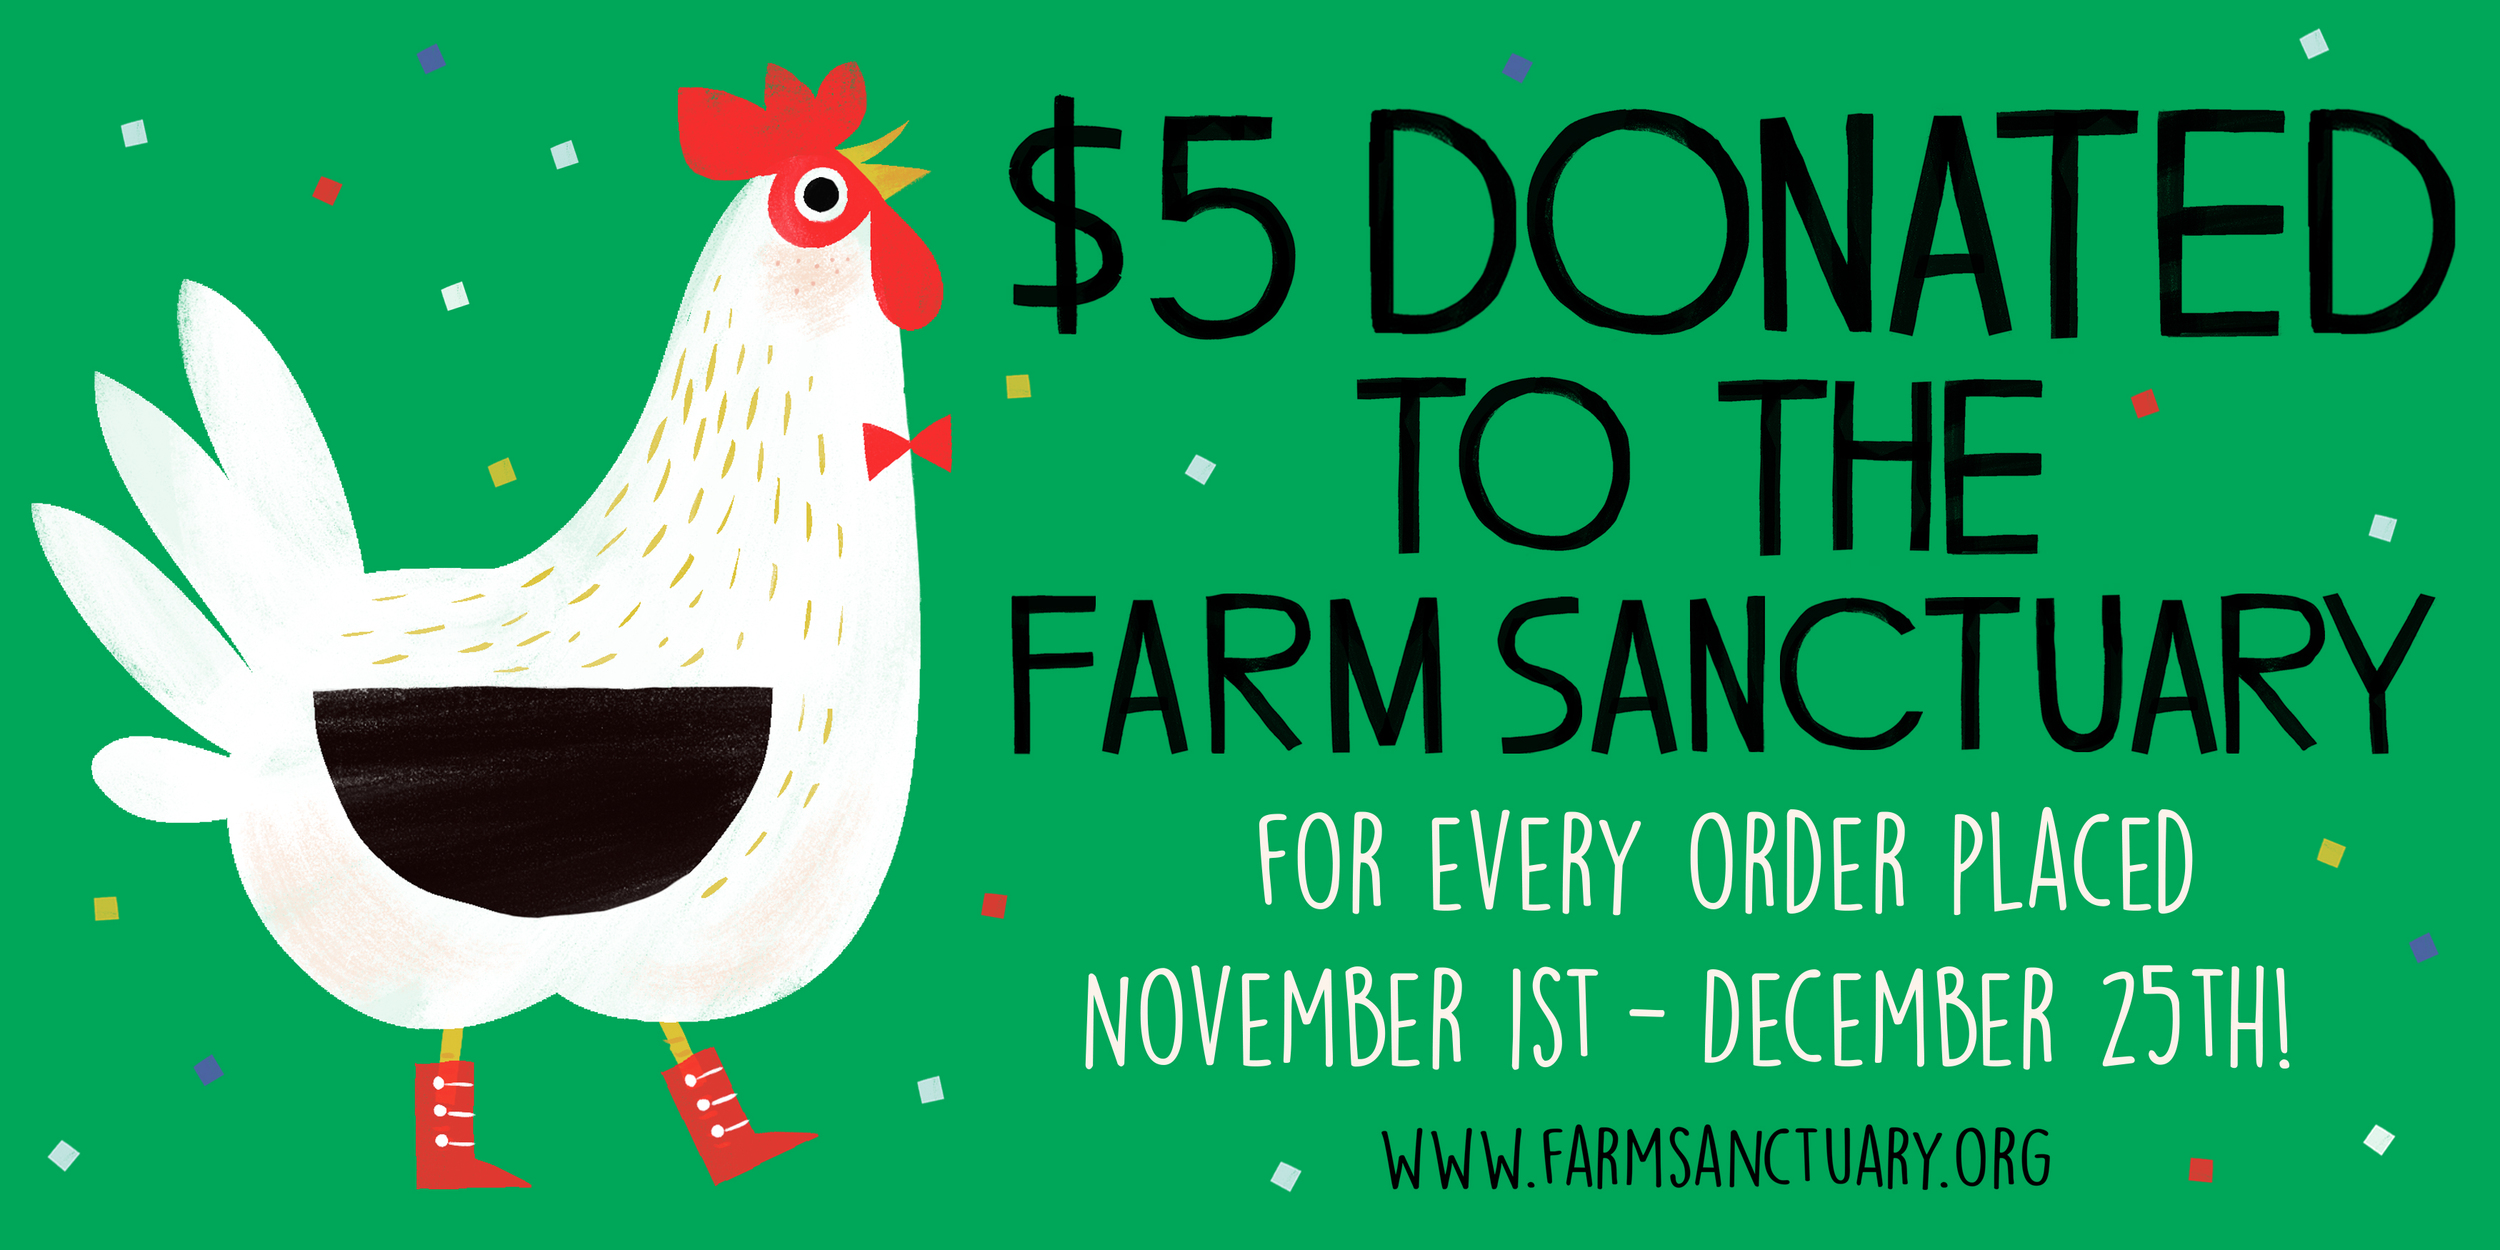 farm sanctuary fundraiser